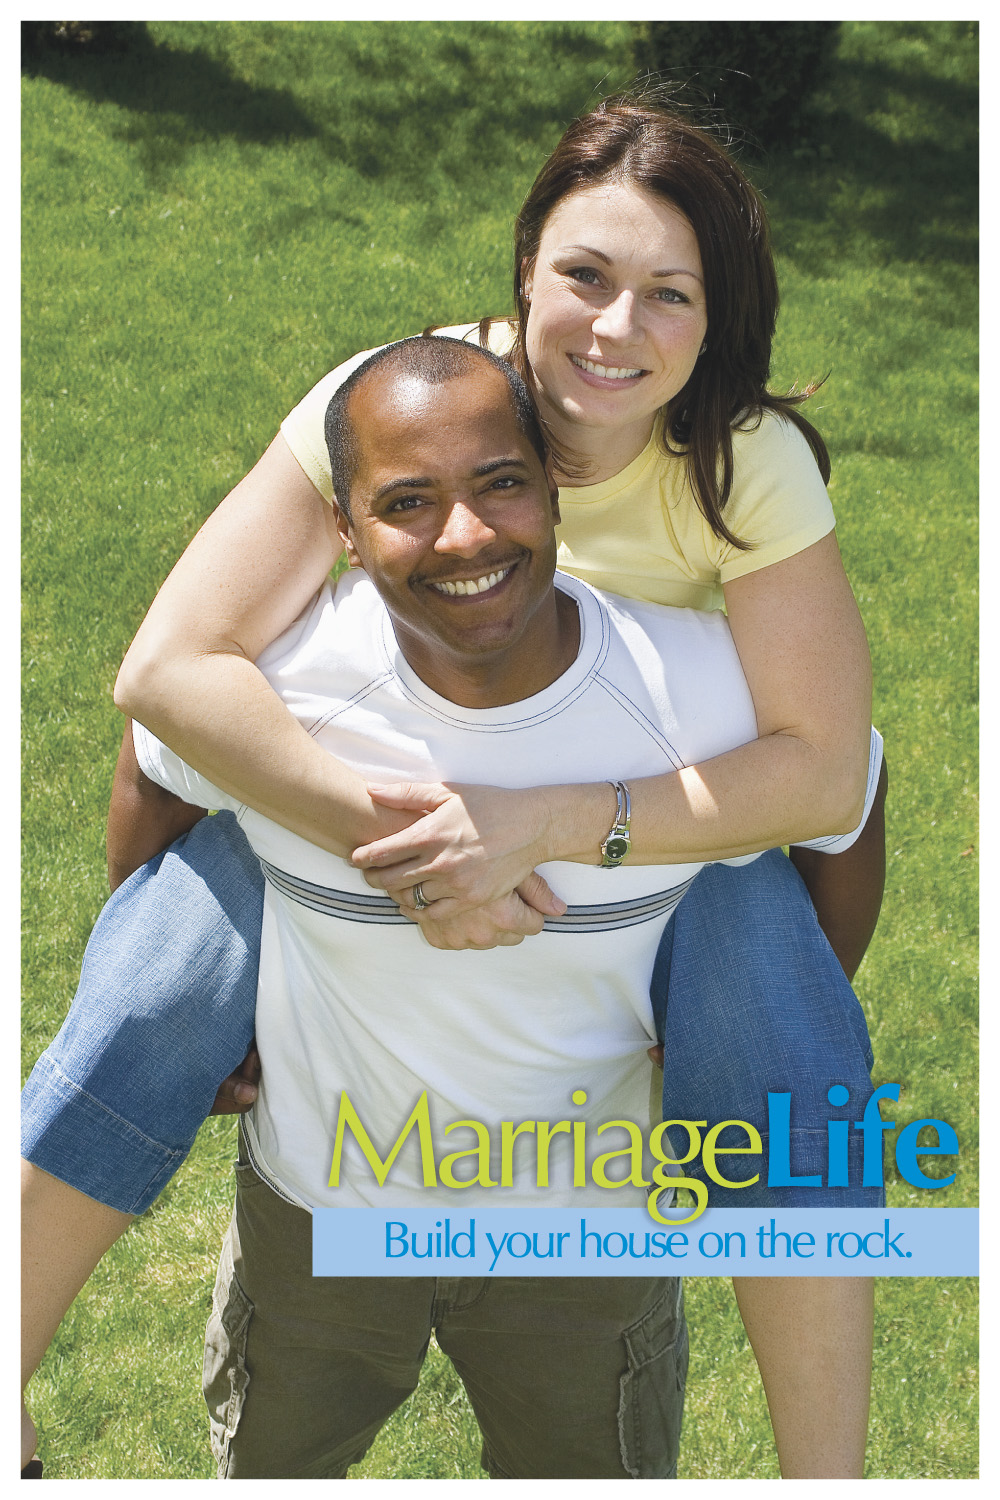 MarriageLifePoster_1b.jpg